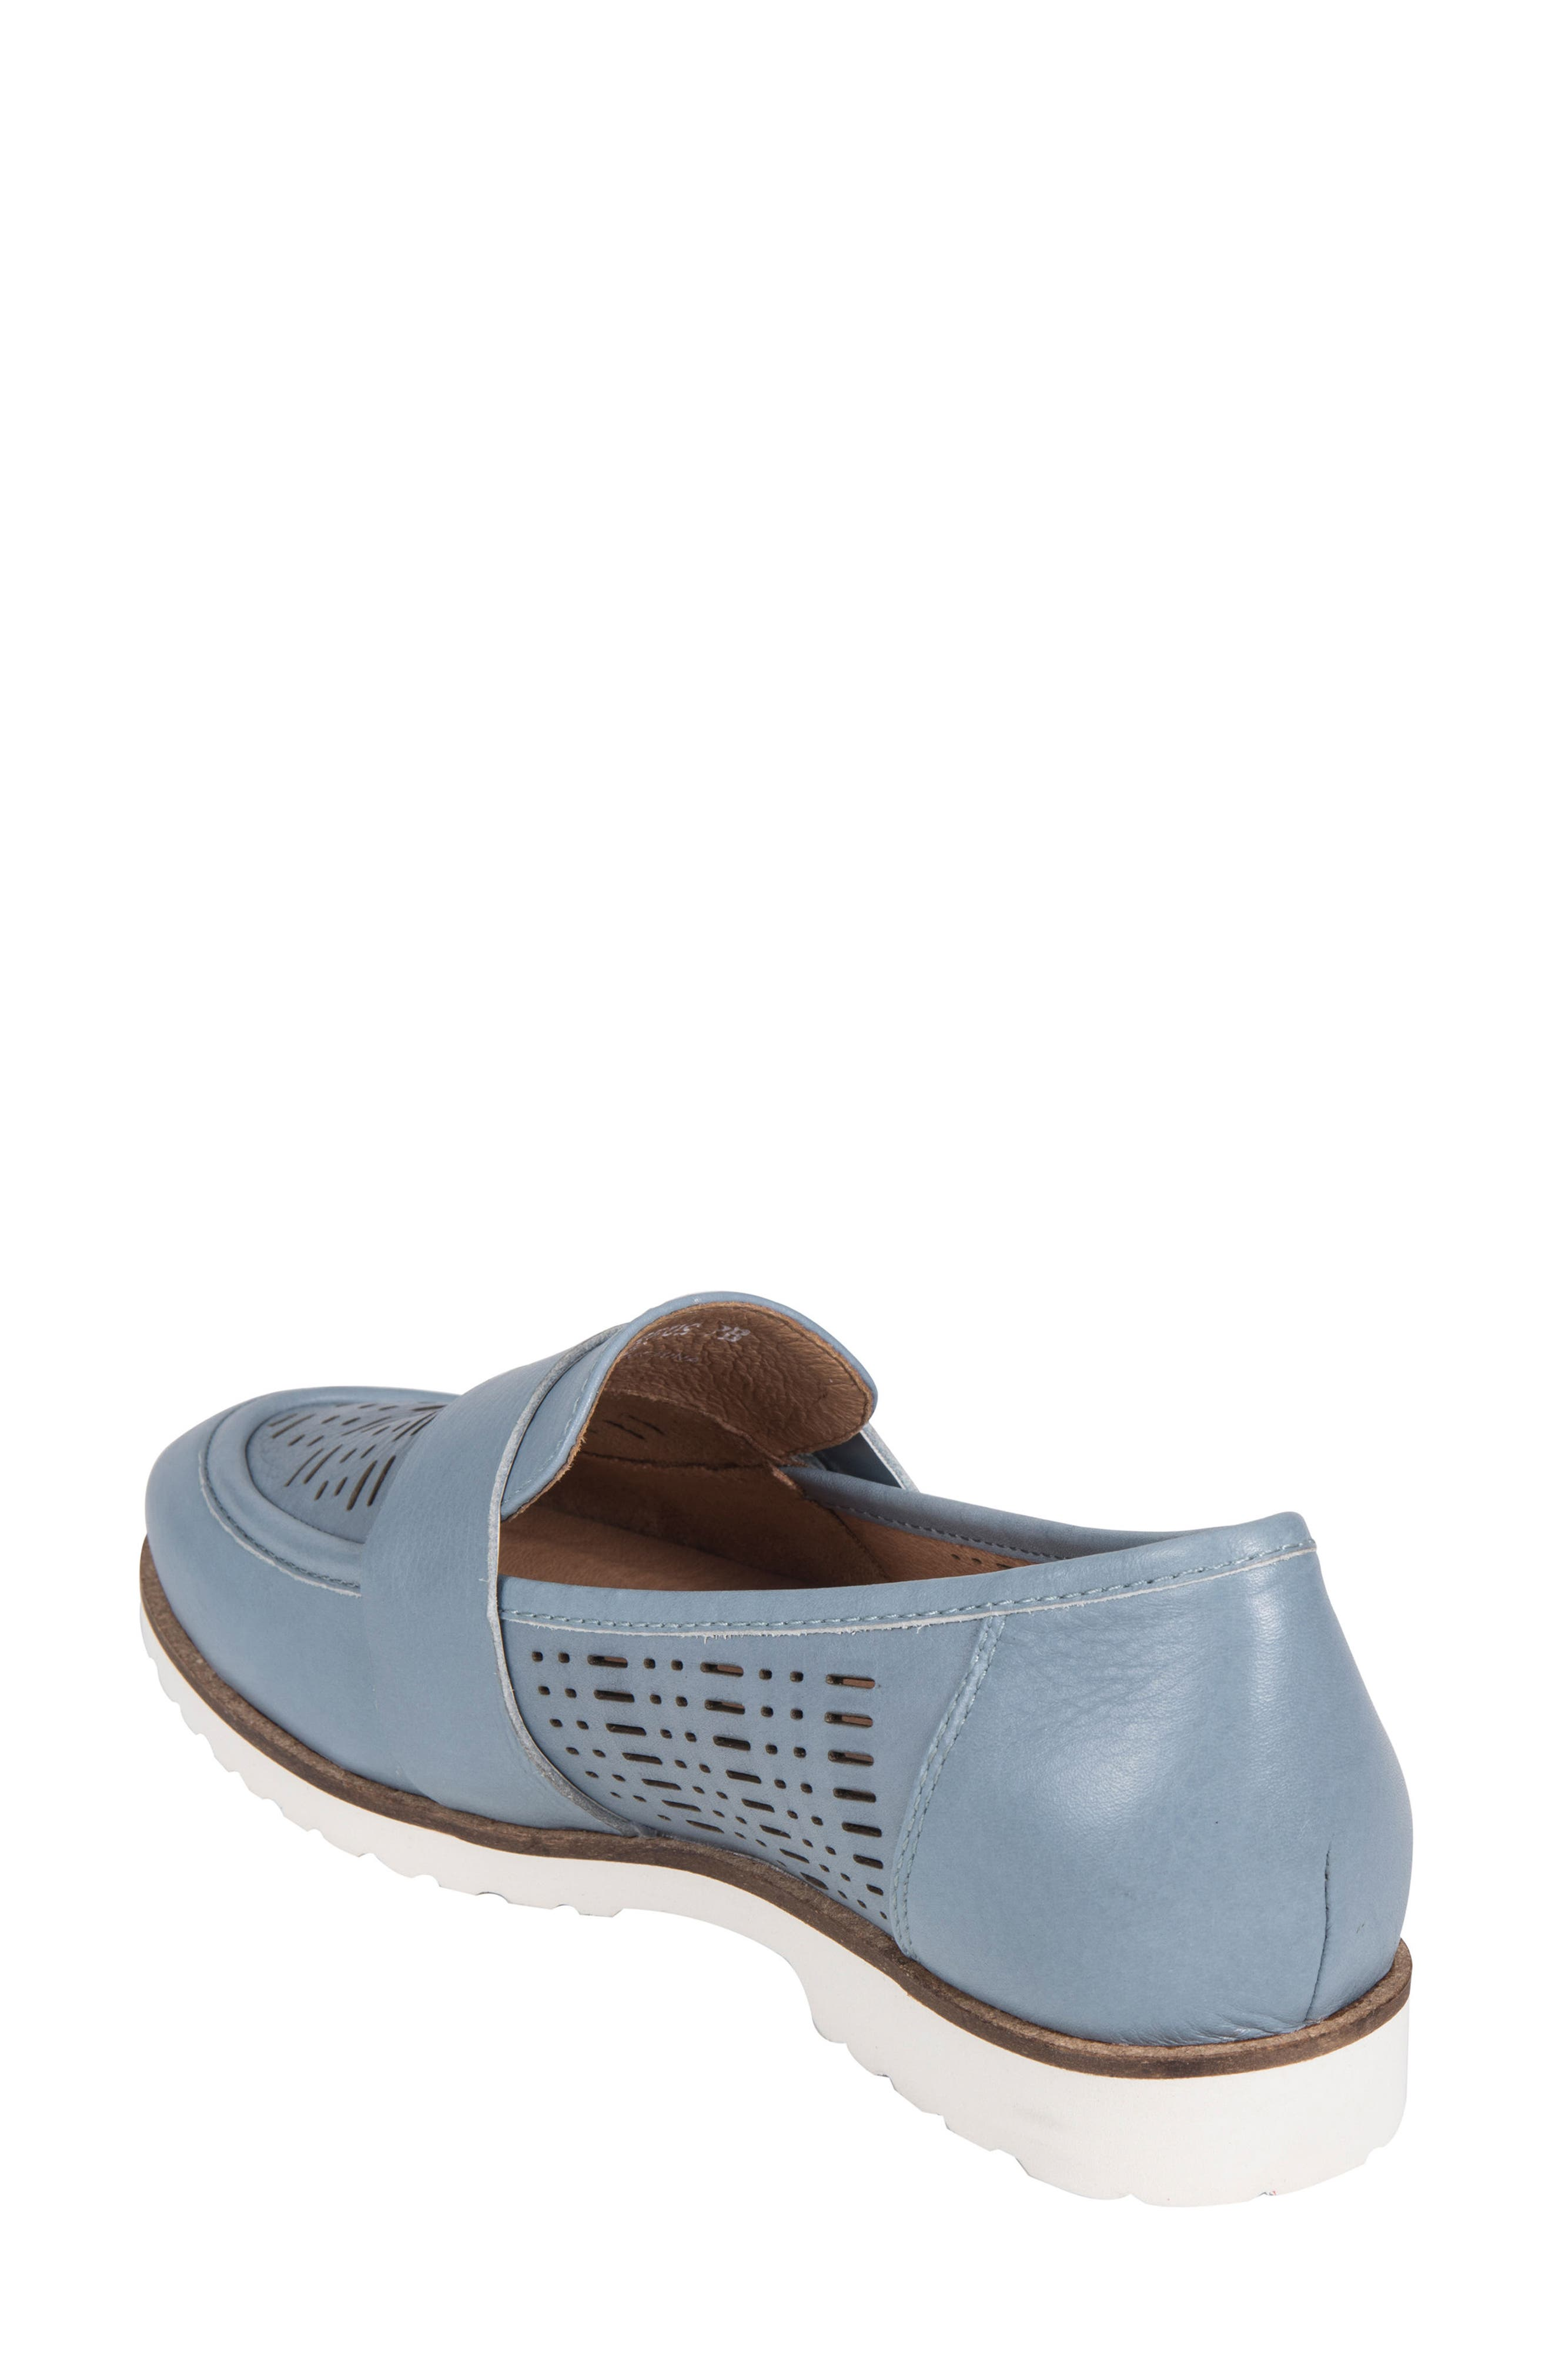 Masio Loafer,                             Alternate thumbnail 2, color,                             Blue Leather